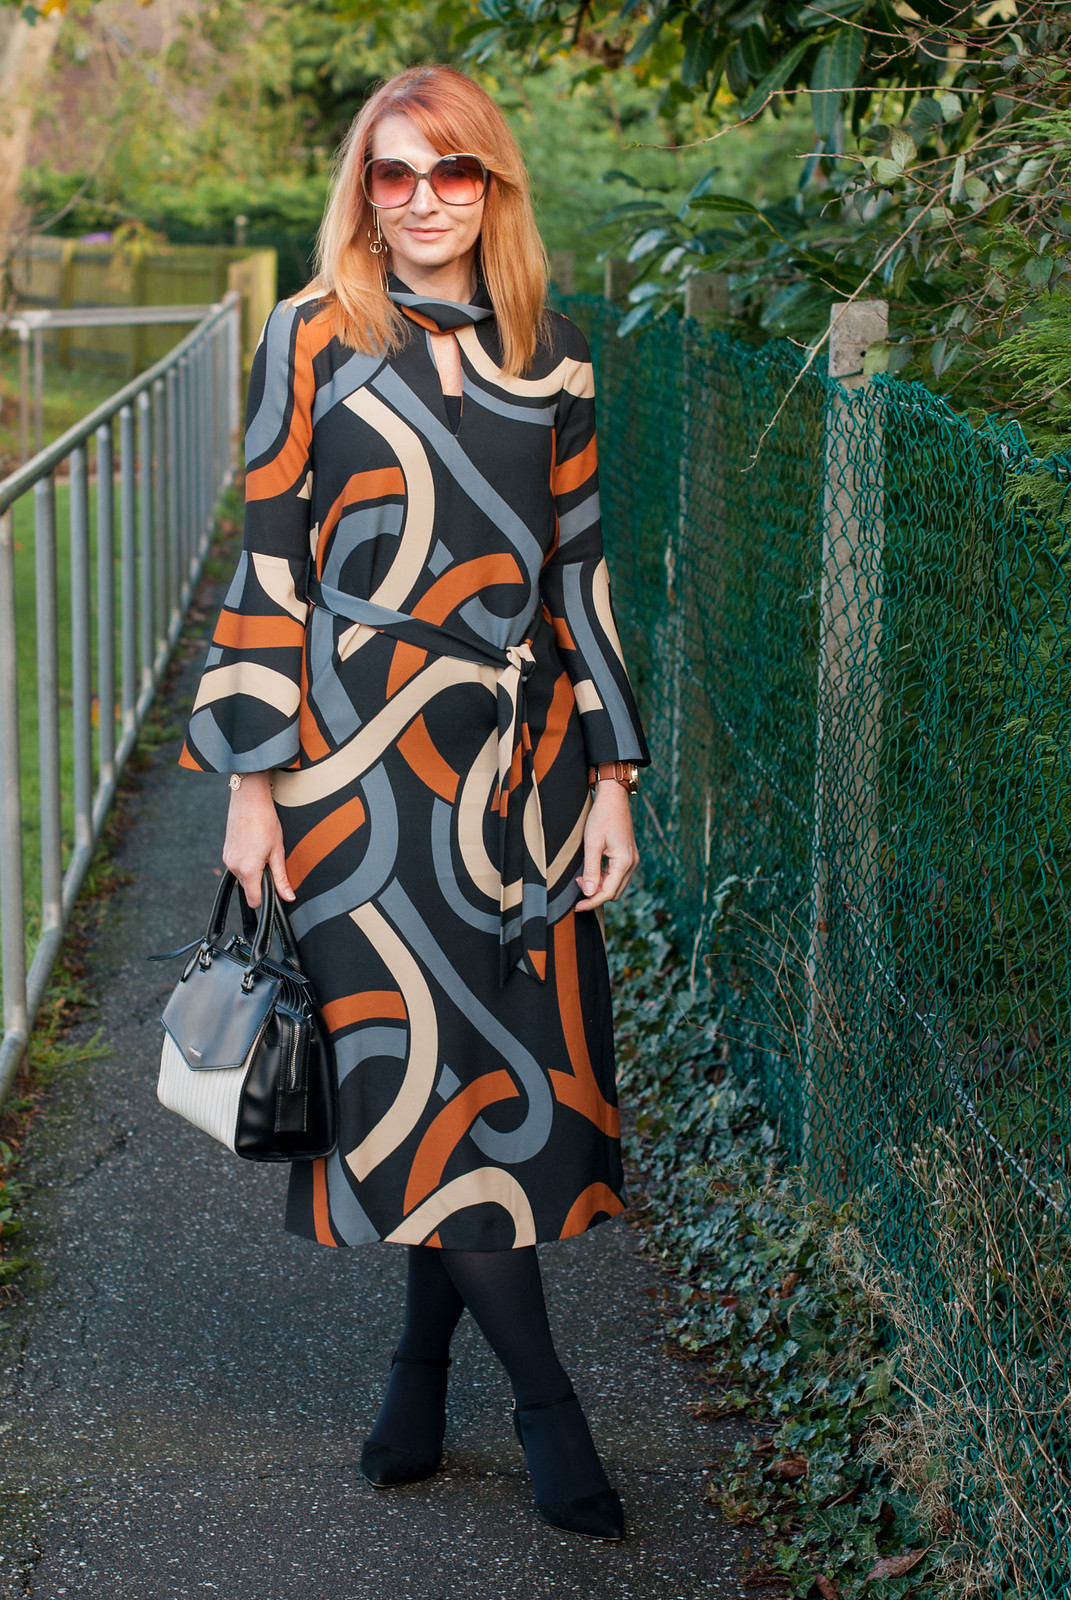 Elegant 70s style patterned midi dress in autumnal colours - bell sleeves, tie waist (Hobbs AW17)   Not Dressed As Lamb, over 40 style